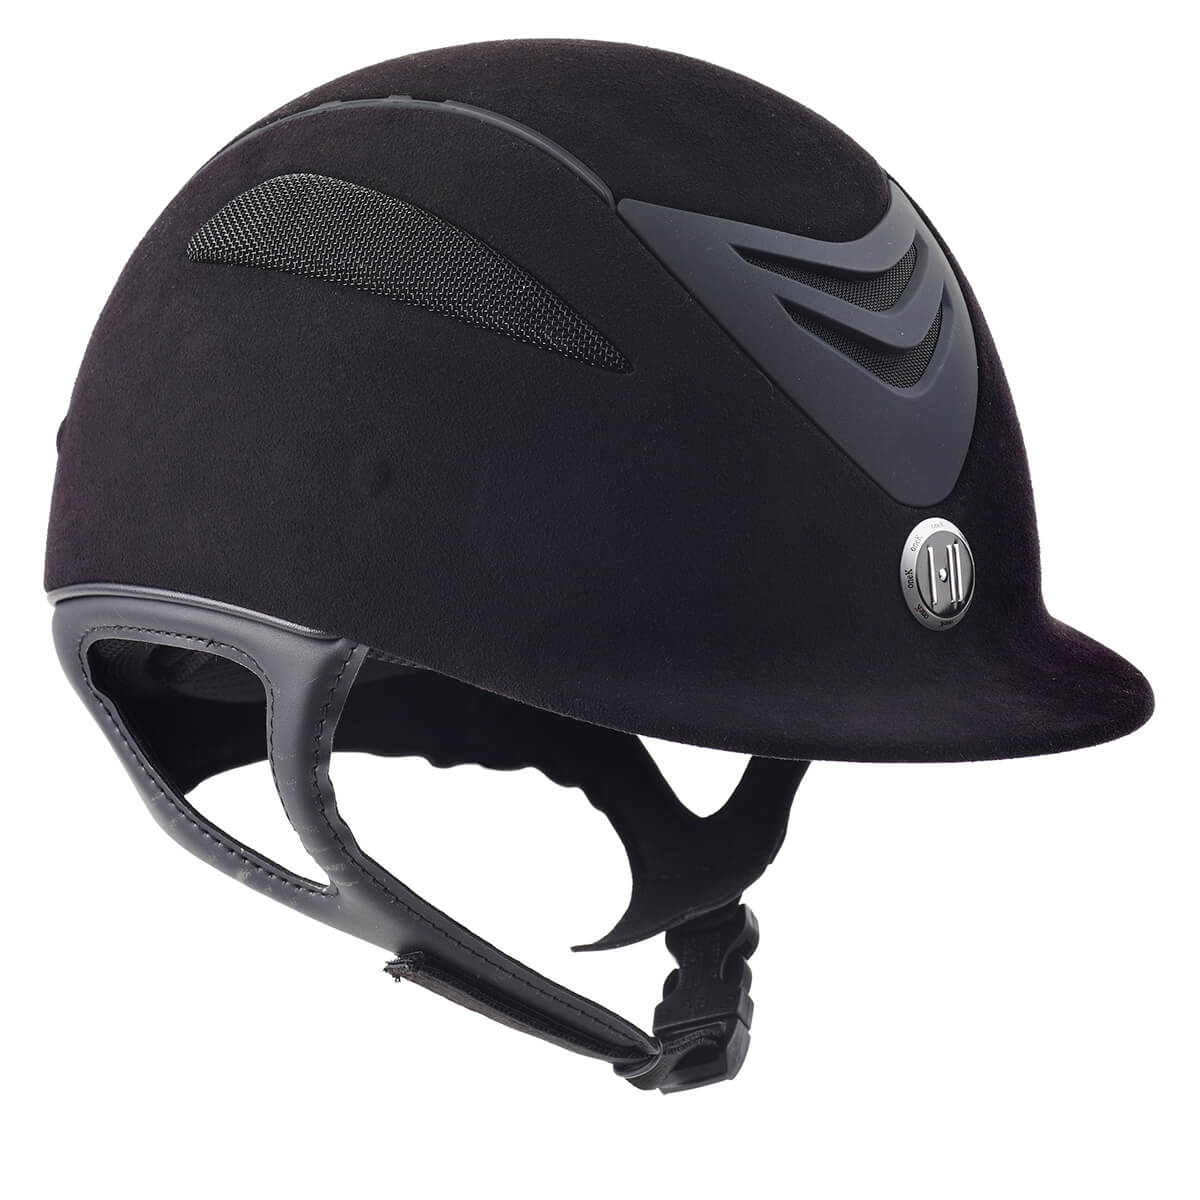 470433 Helmet Defender Sued Junior Black Matte